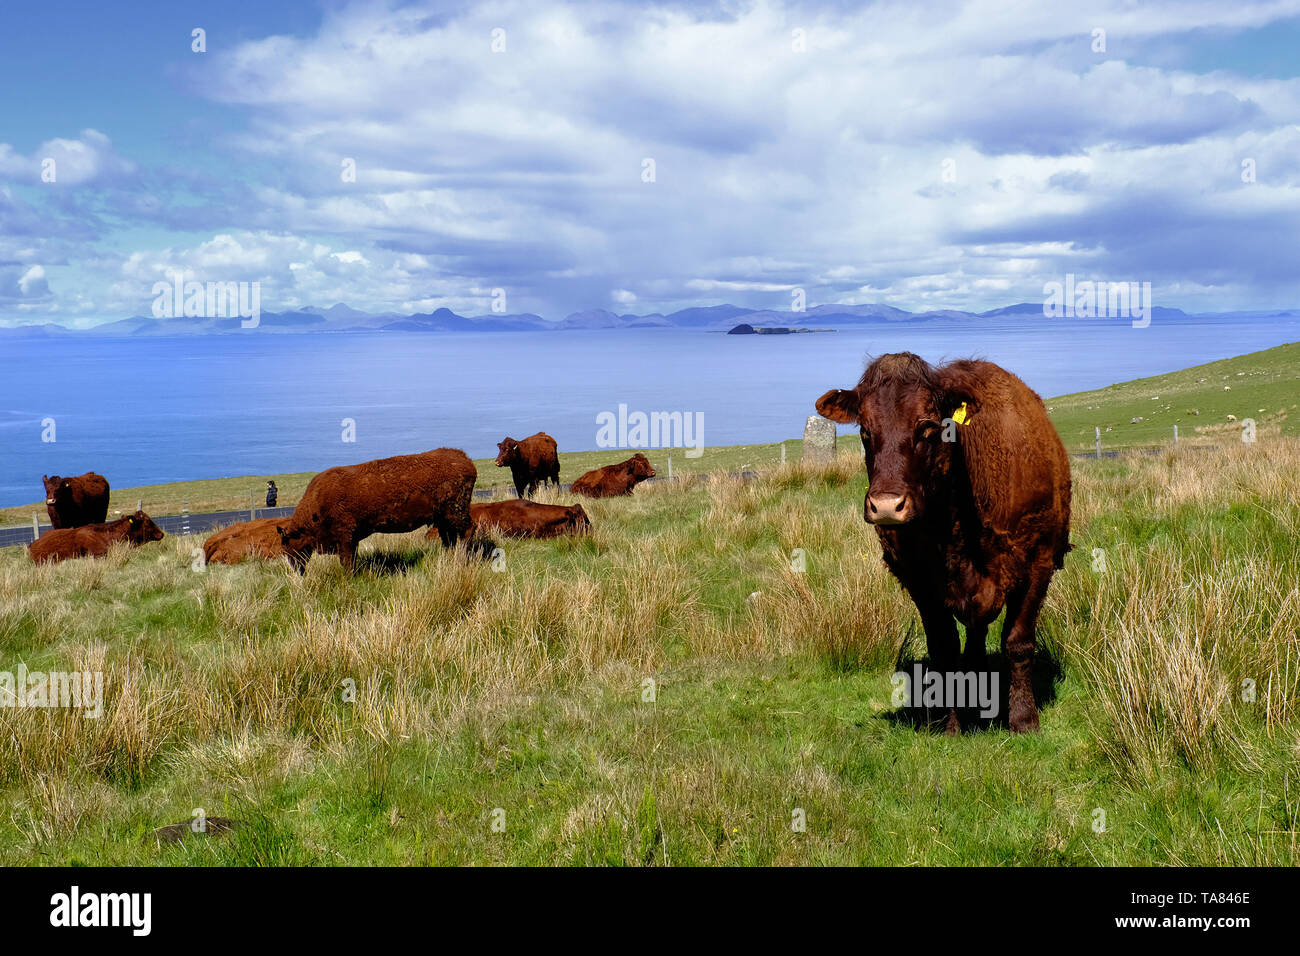 Isle of Skye, Cows at Colbost Folk Museum, Dunvegan Scotland May 8th - 19th. Trip across Scotland Foto Samantha Zucchi Insidefoto - Stock Image